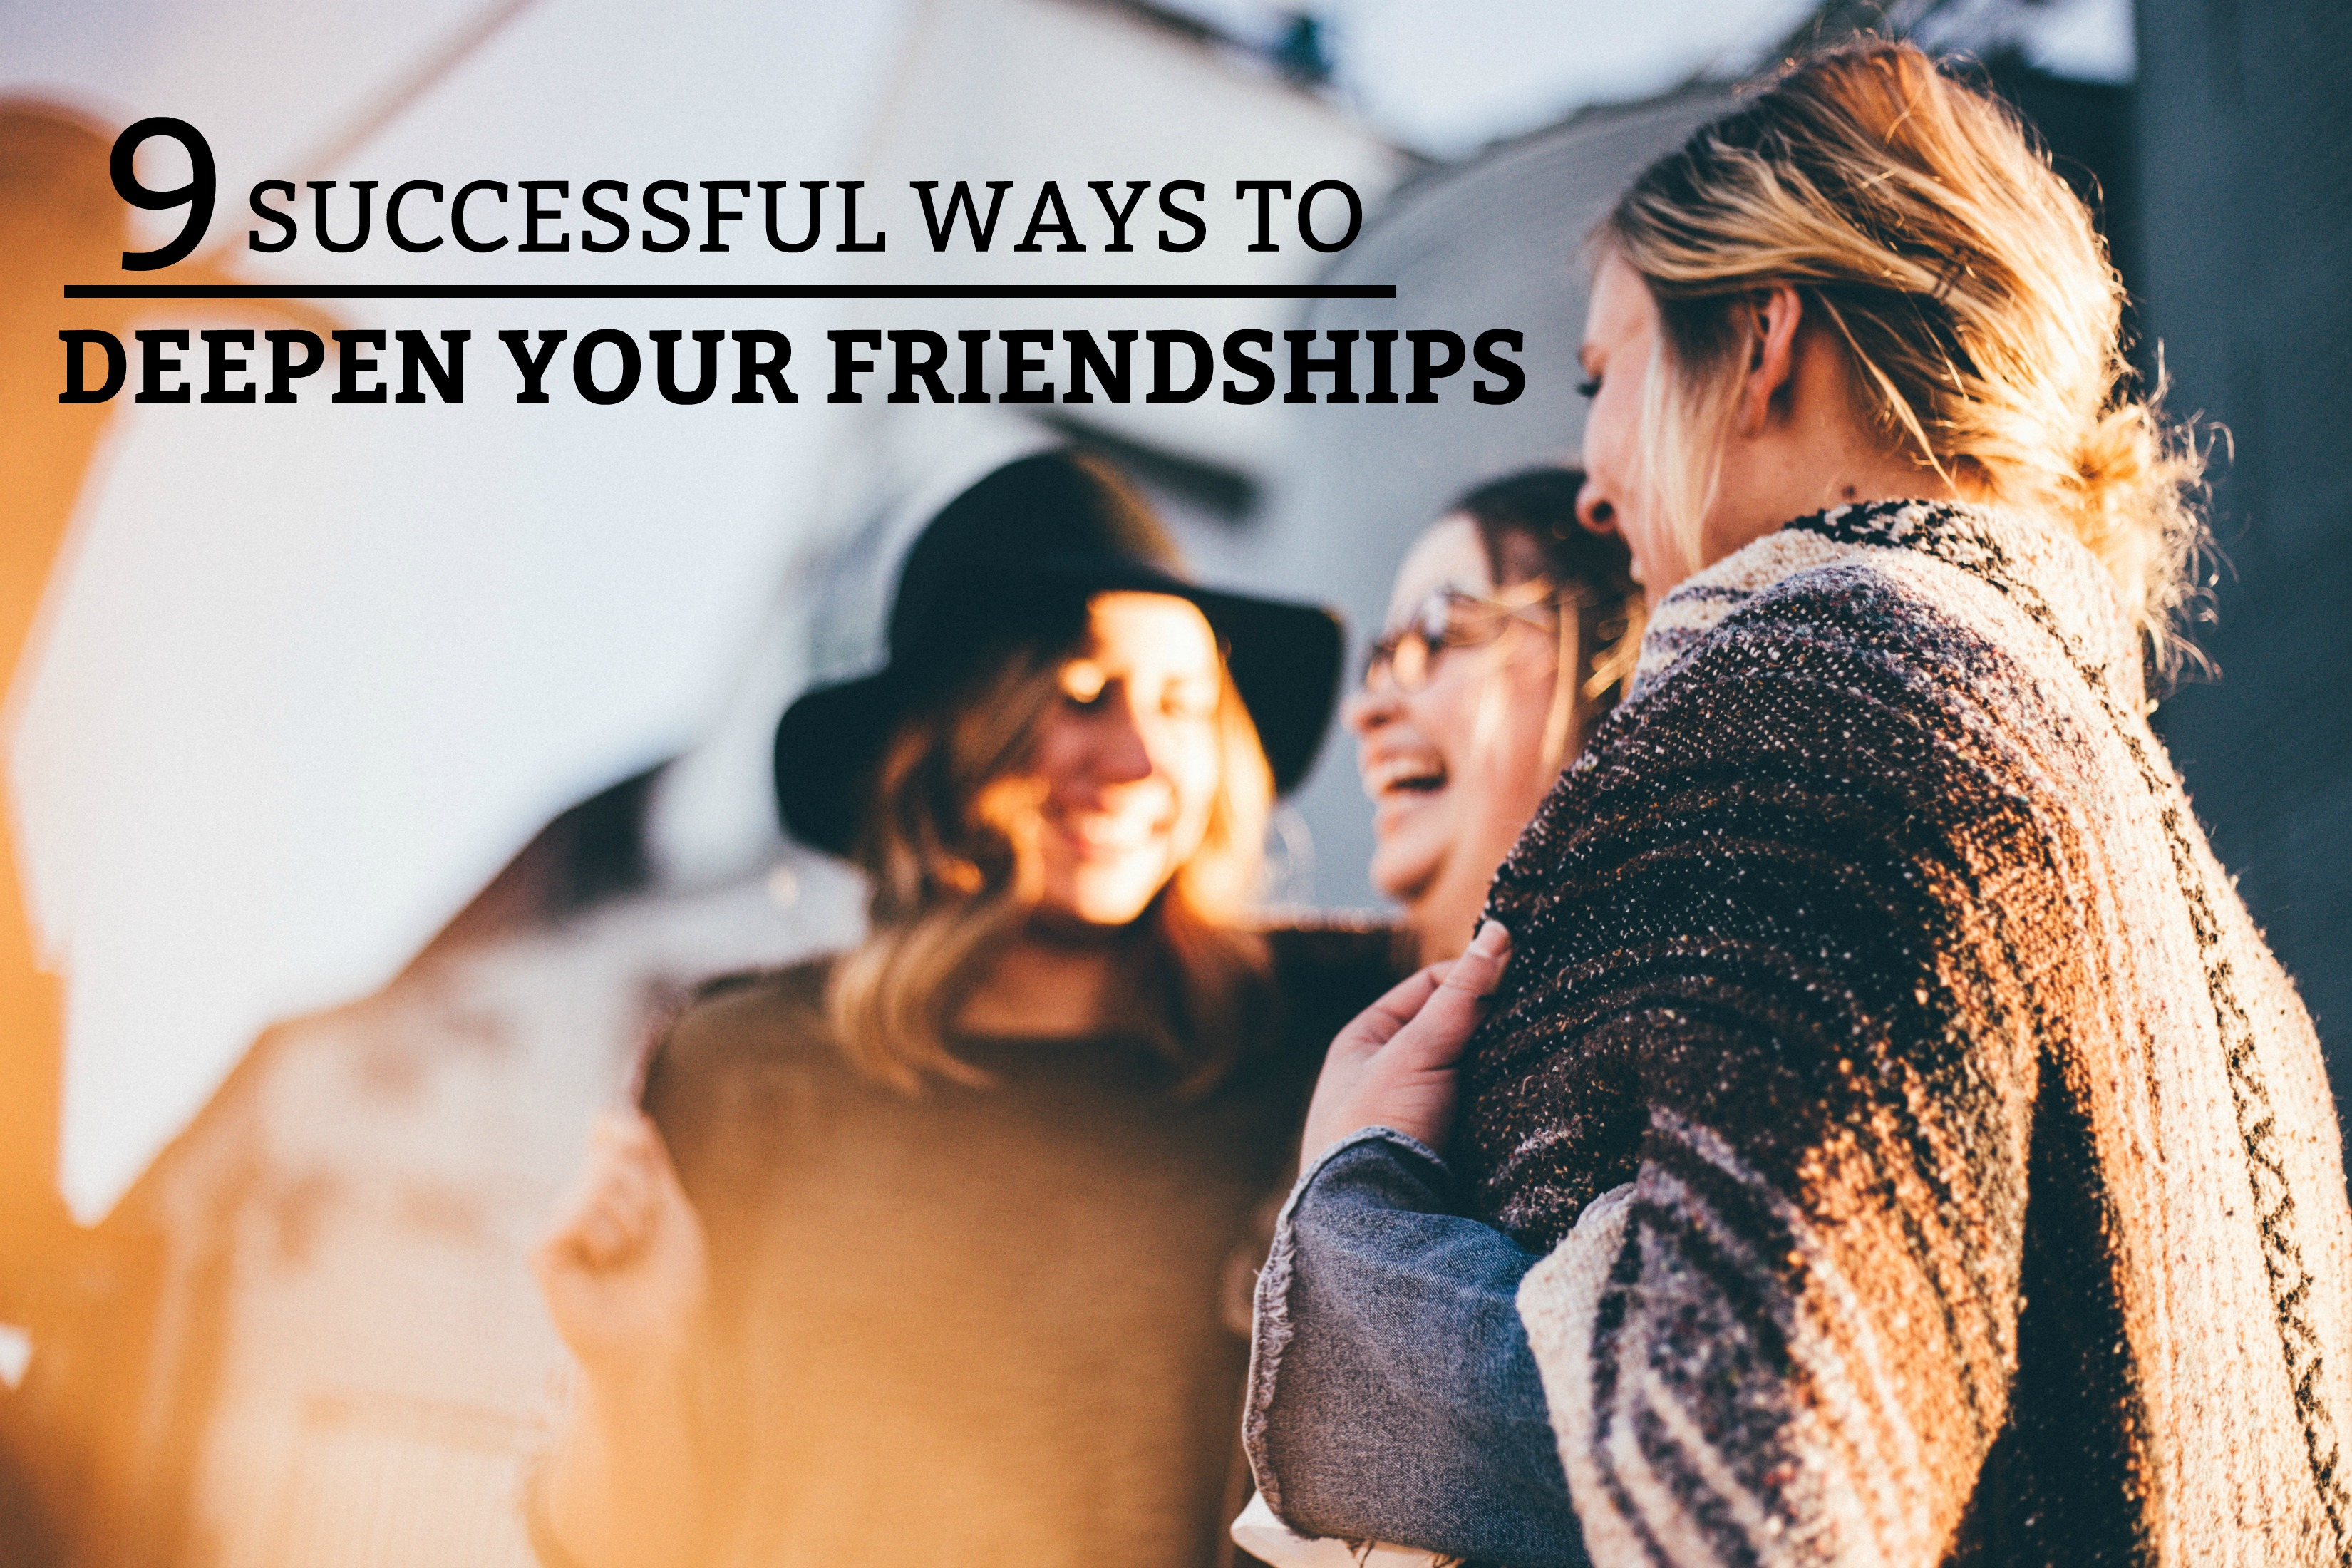 9 Successful Ways To Deepen Your Friendships - A practical guide to strengthen relationships with the people you love. www.tradingaverage.com